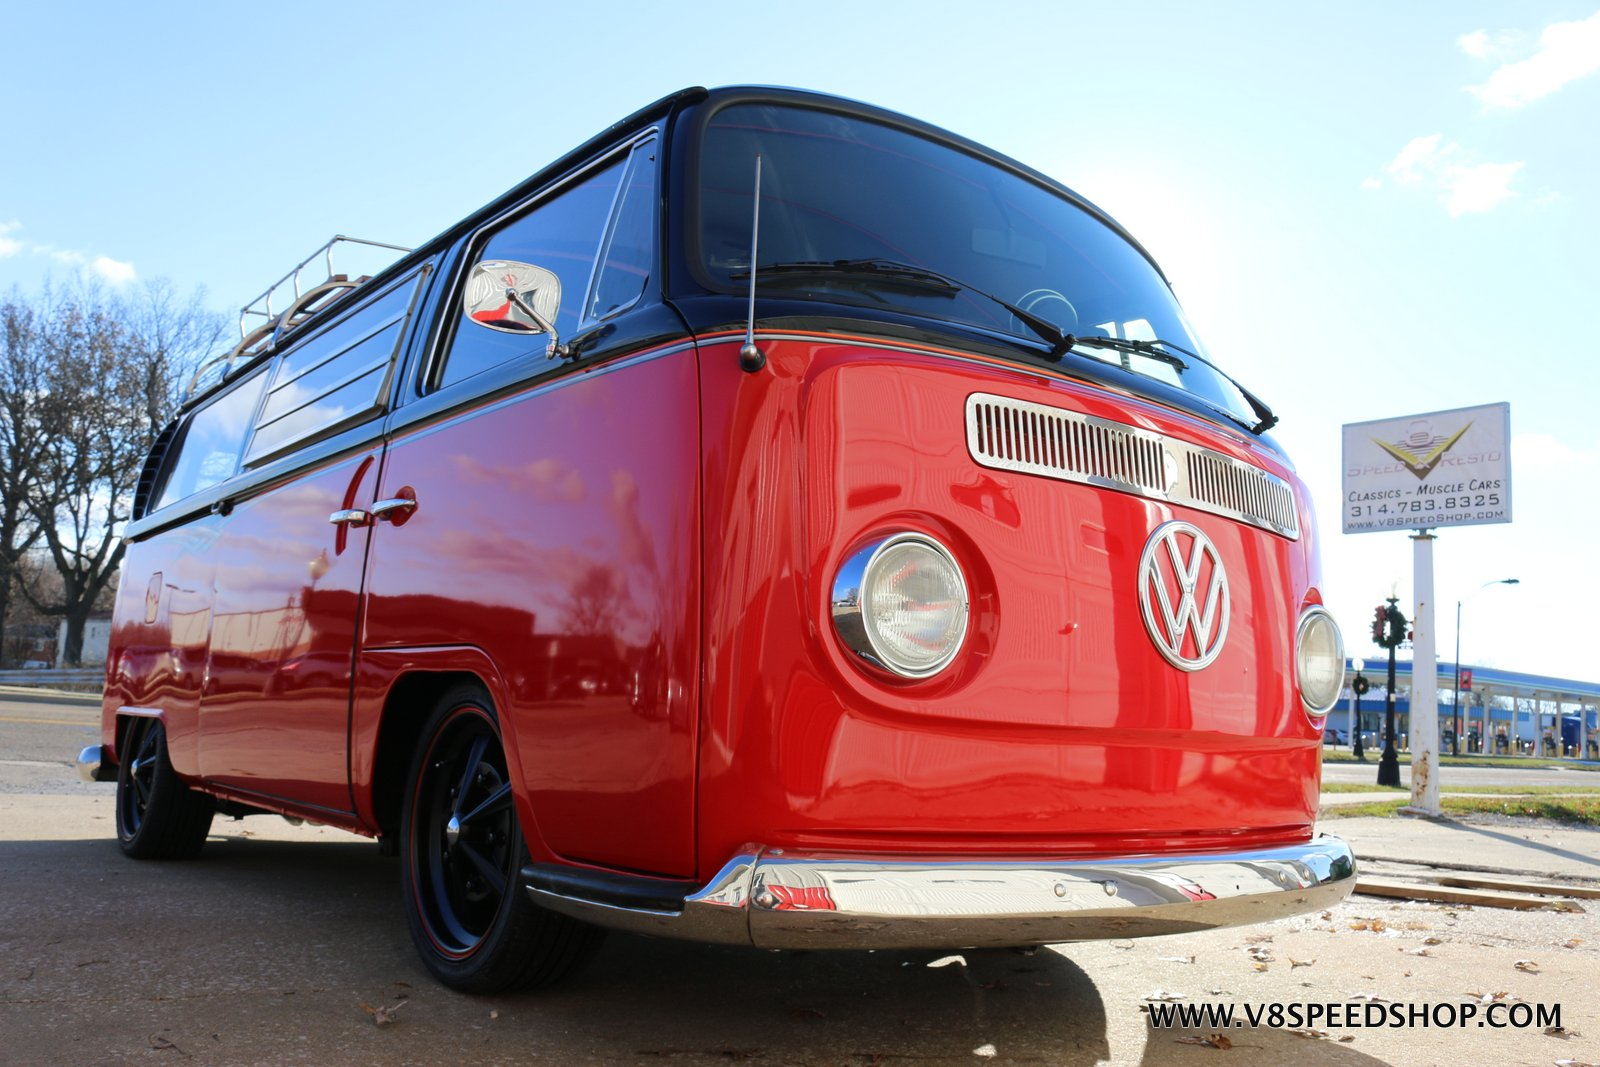 1969 VW Bus Engine Swap and Suspension Modificaitons at the V8 Speed and Resto Shop